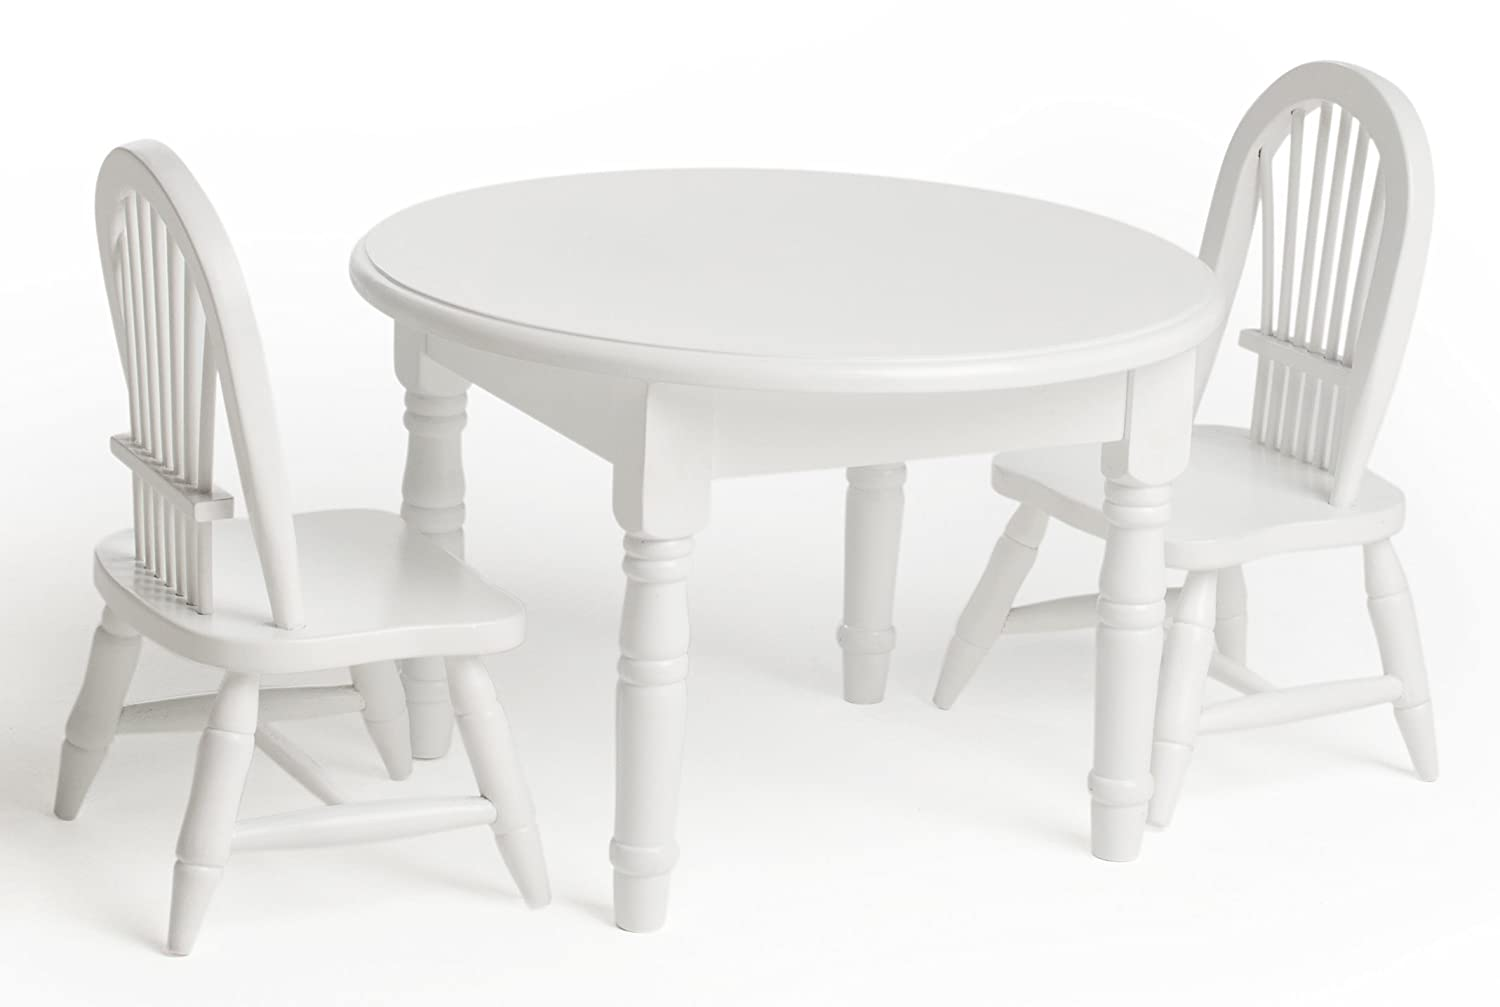 white wood doll furniture kitchen table and chair set fits girl dolls accessories wood amazon canada